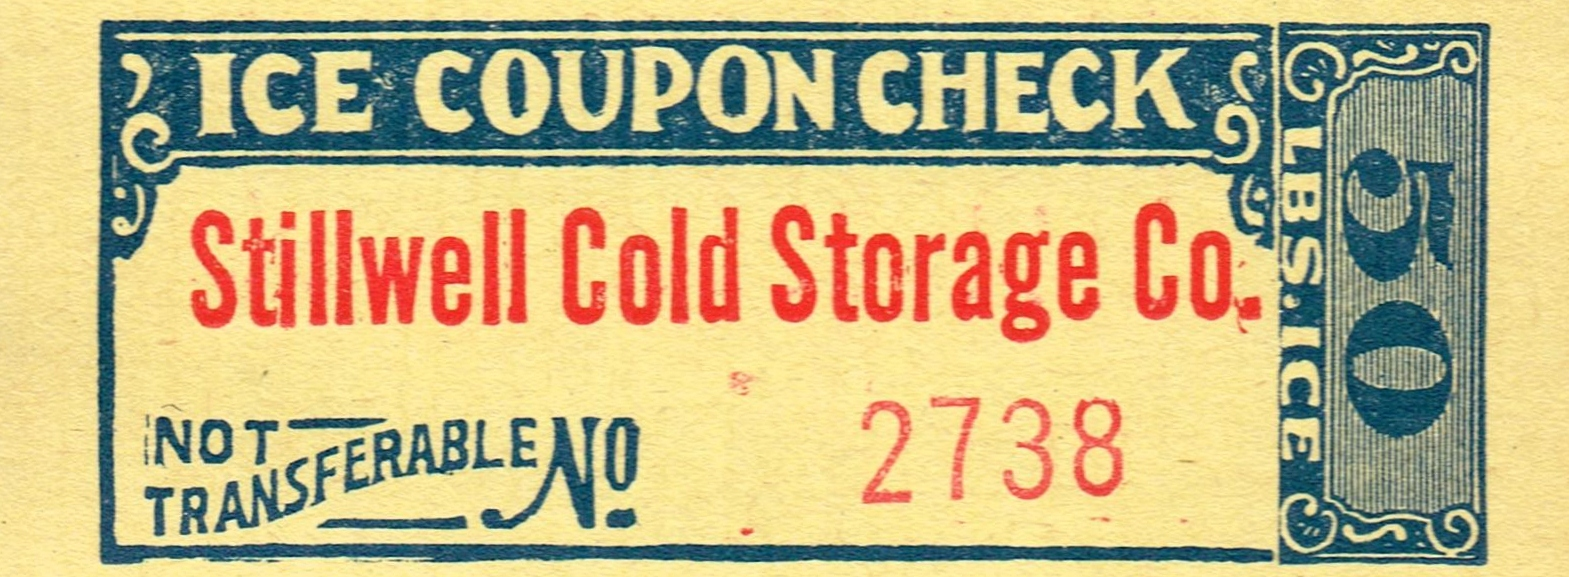 Antique Graphics Wednesday Ice Coupon Checks The History Behind